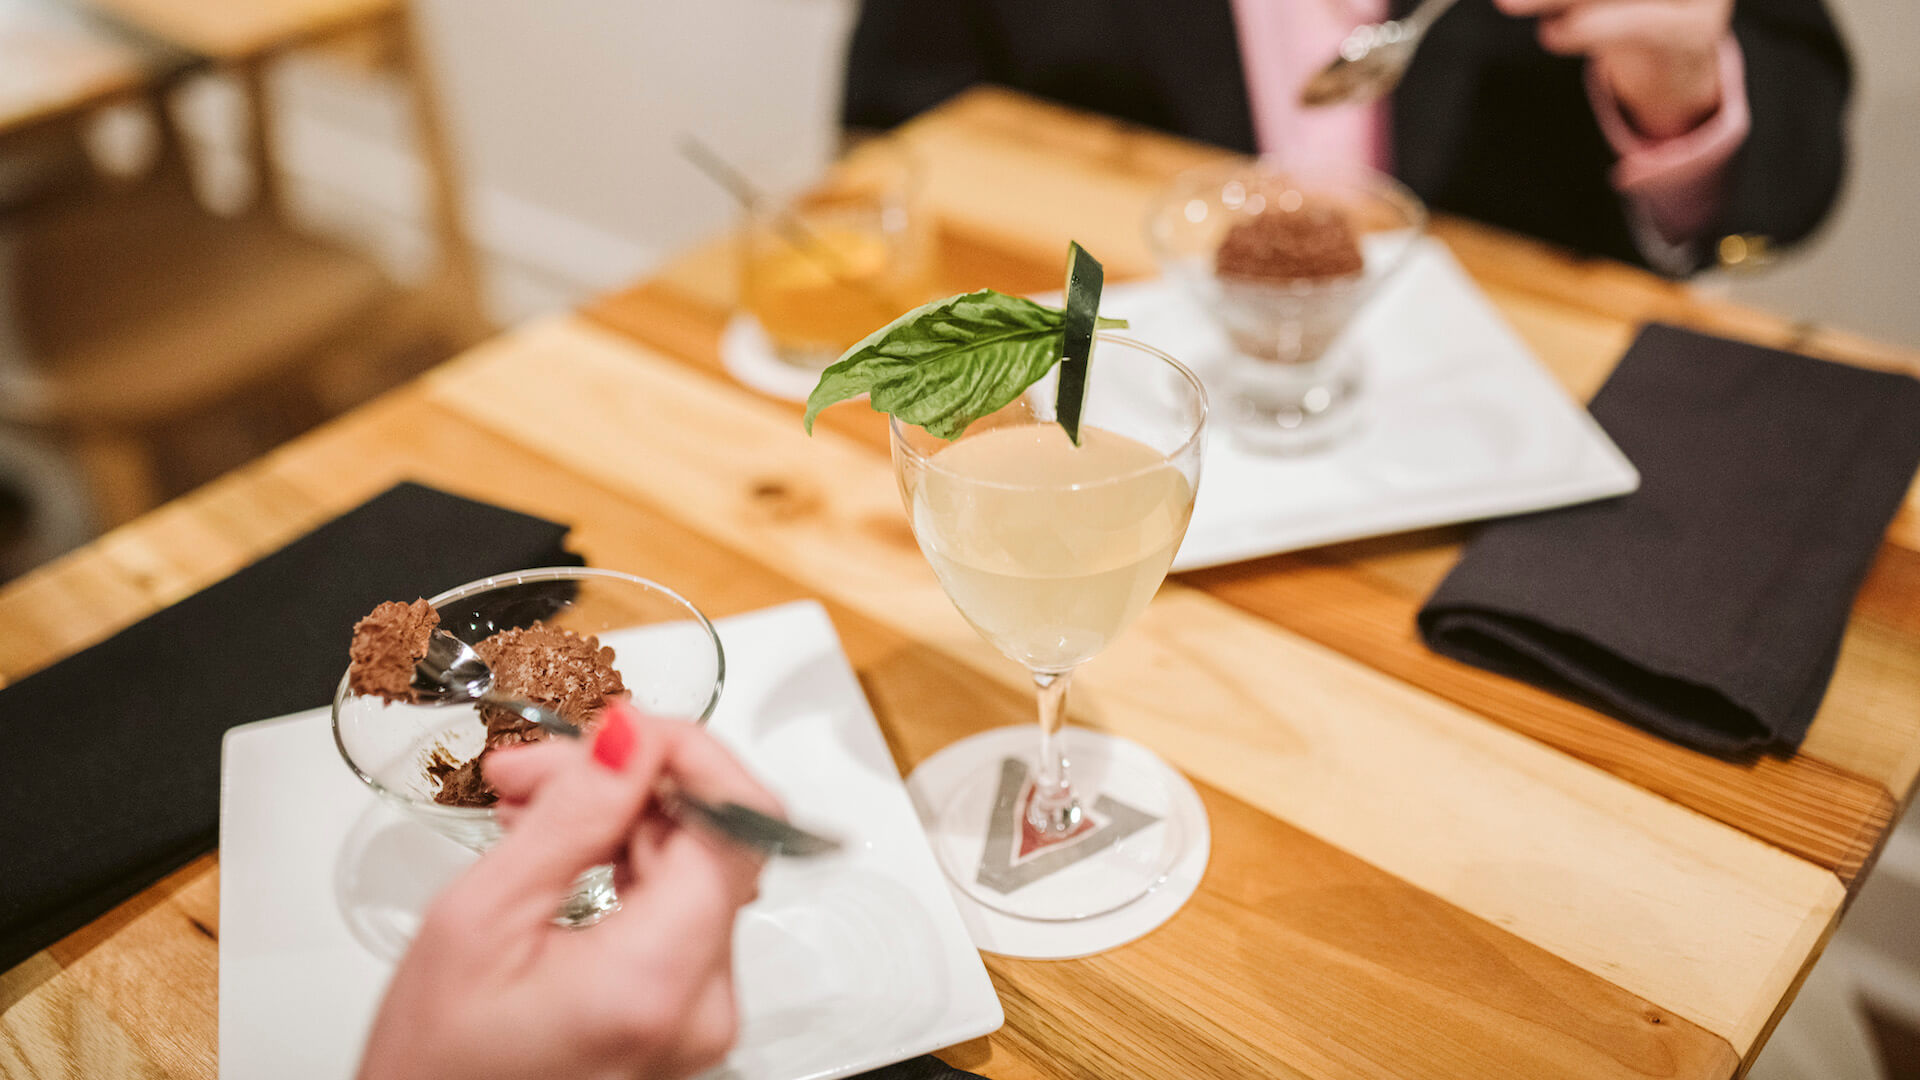 Drinks and desserts